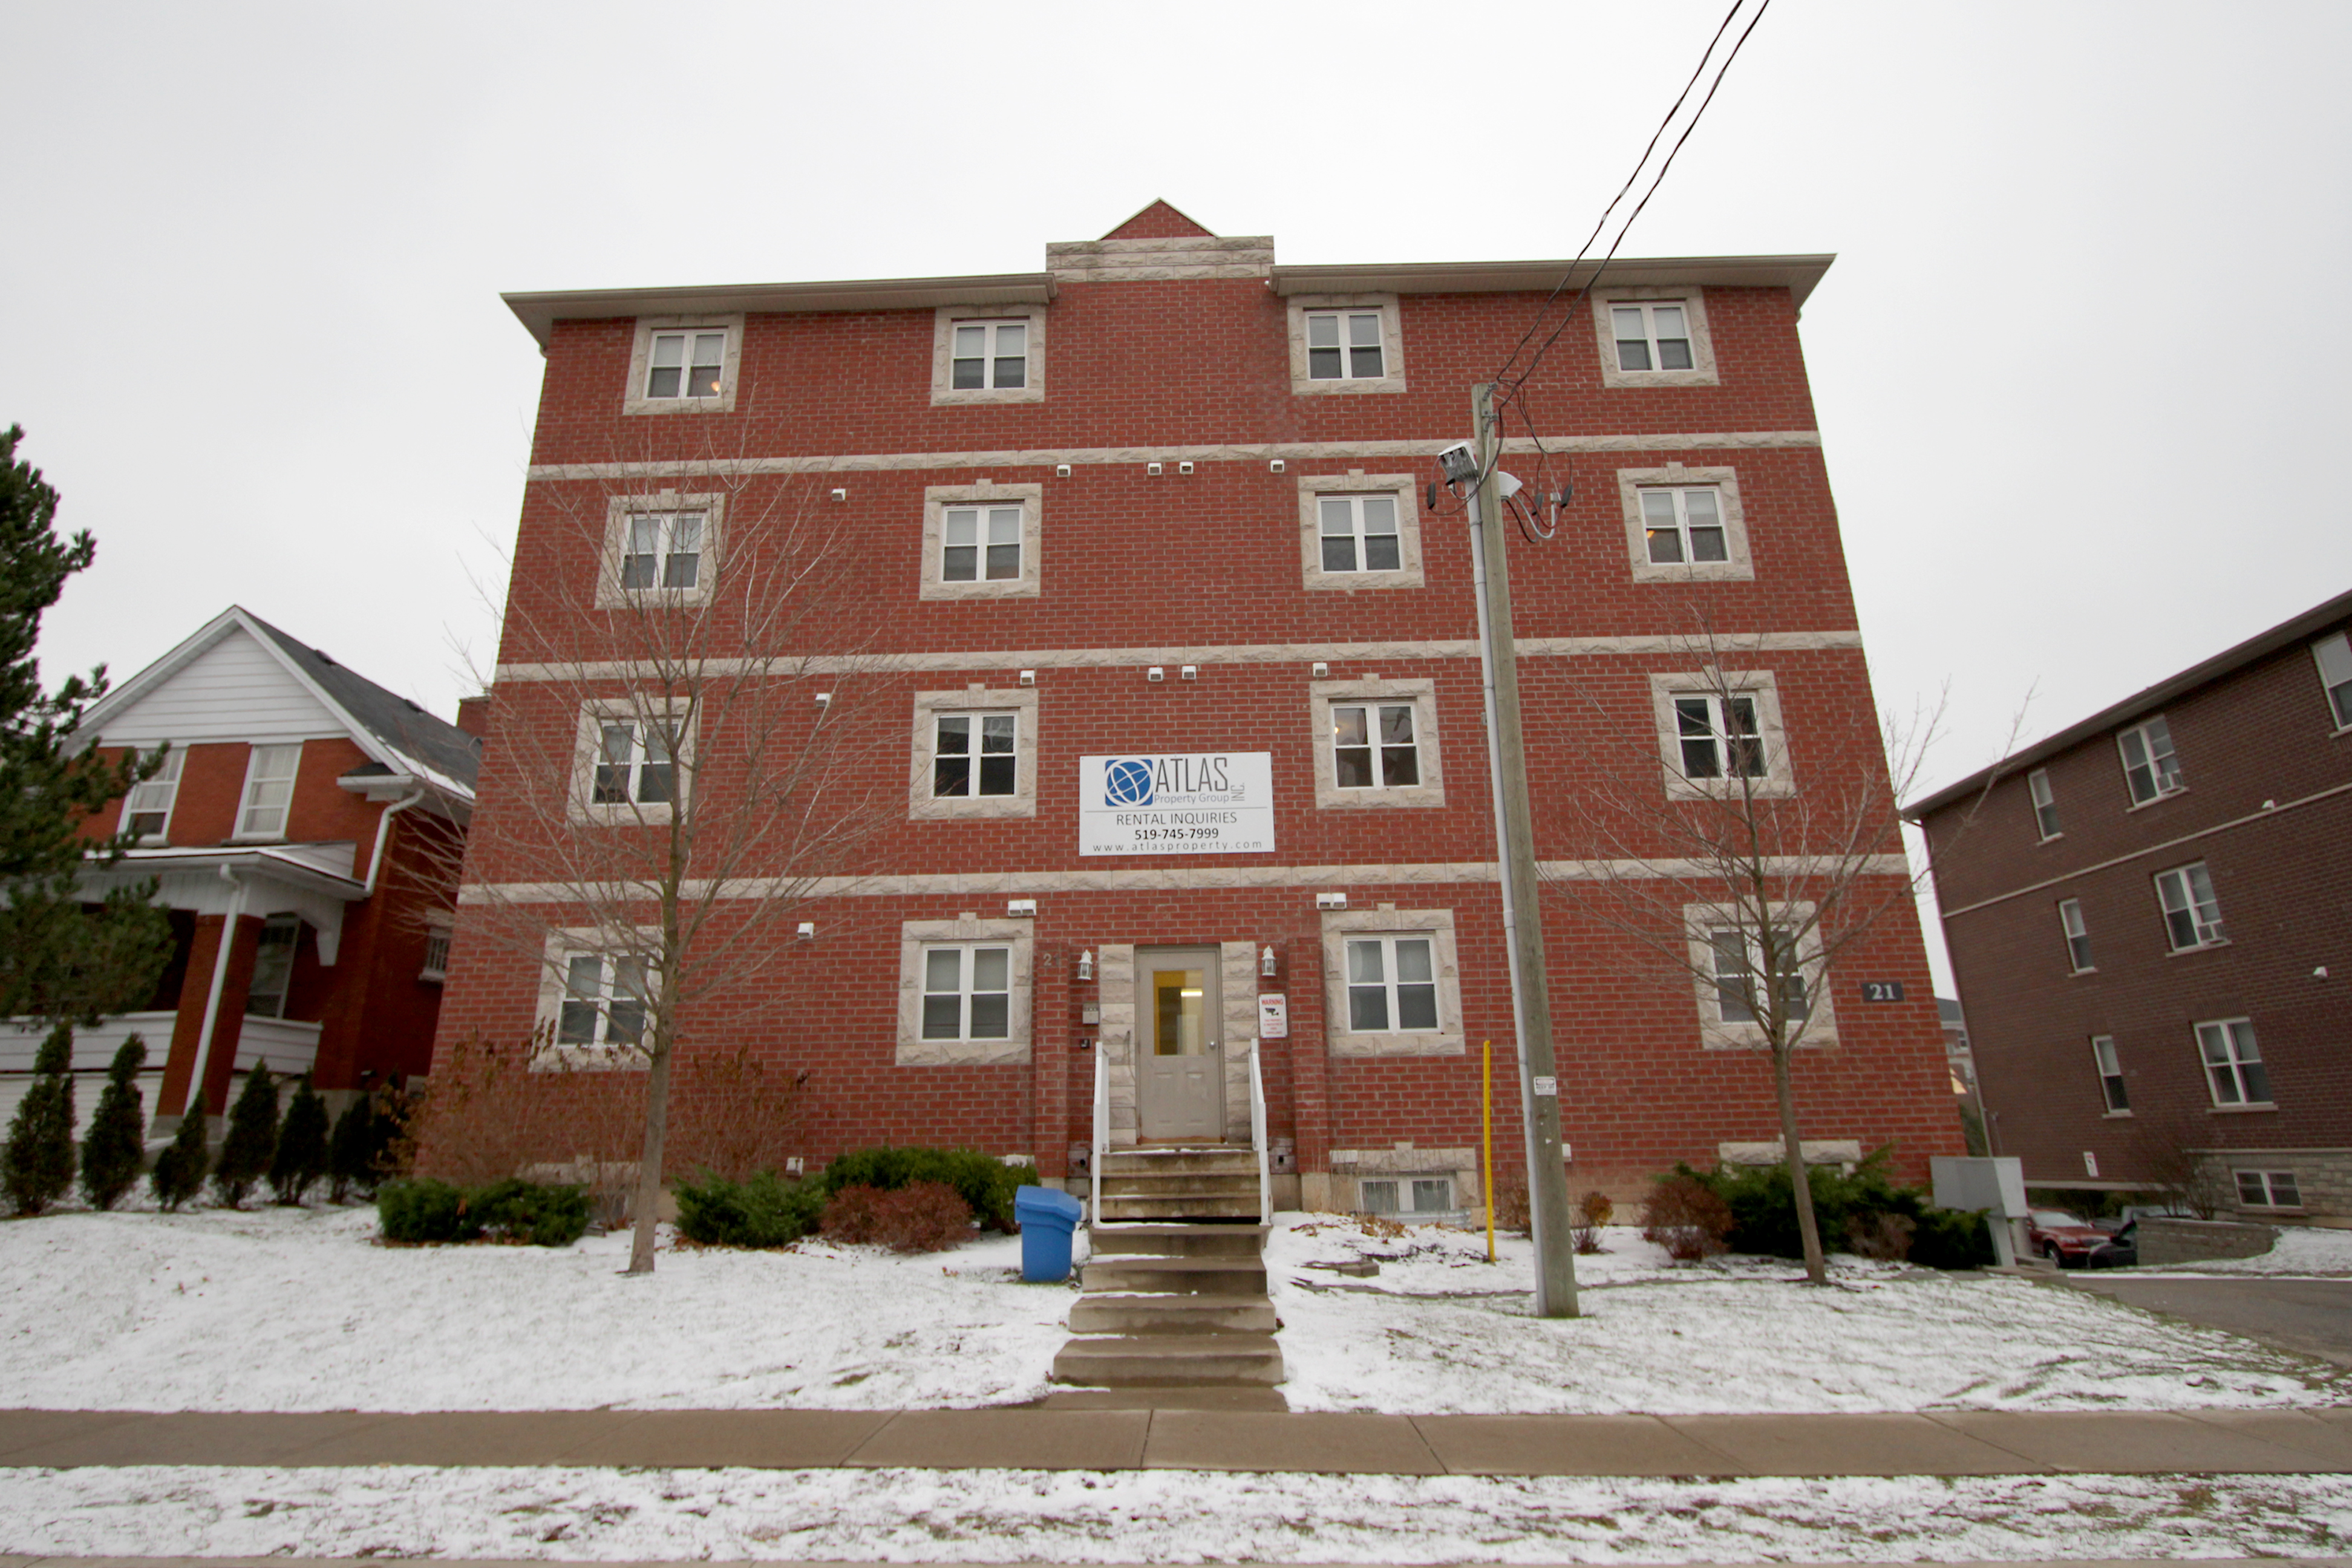 Apartments on Ezra, Bricker and Hickory were purchased by the university in spring 2012 (Photo by: Heather Davidson)